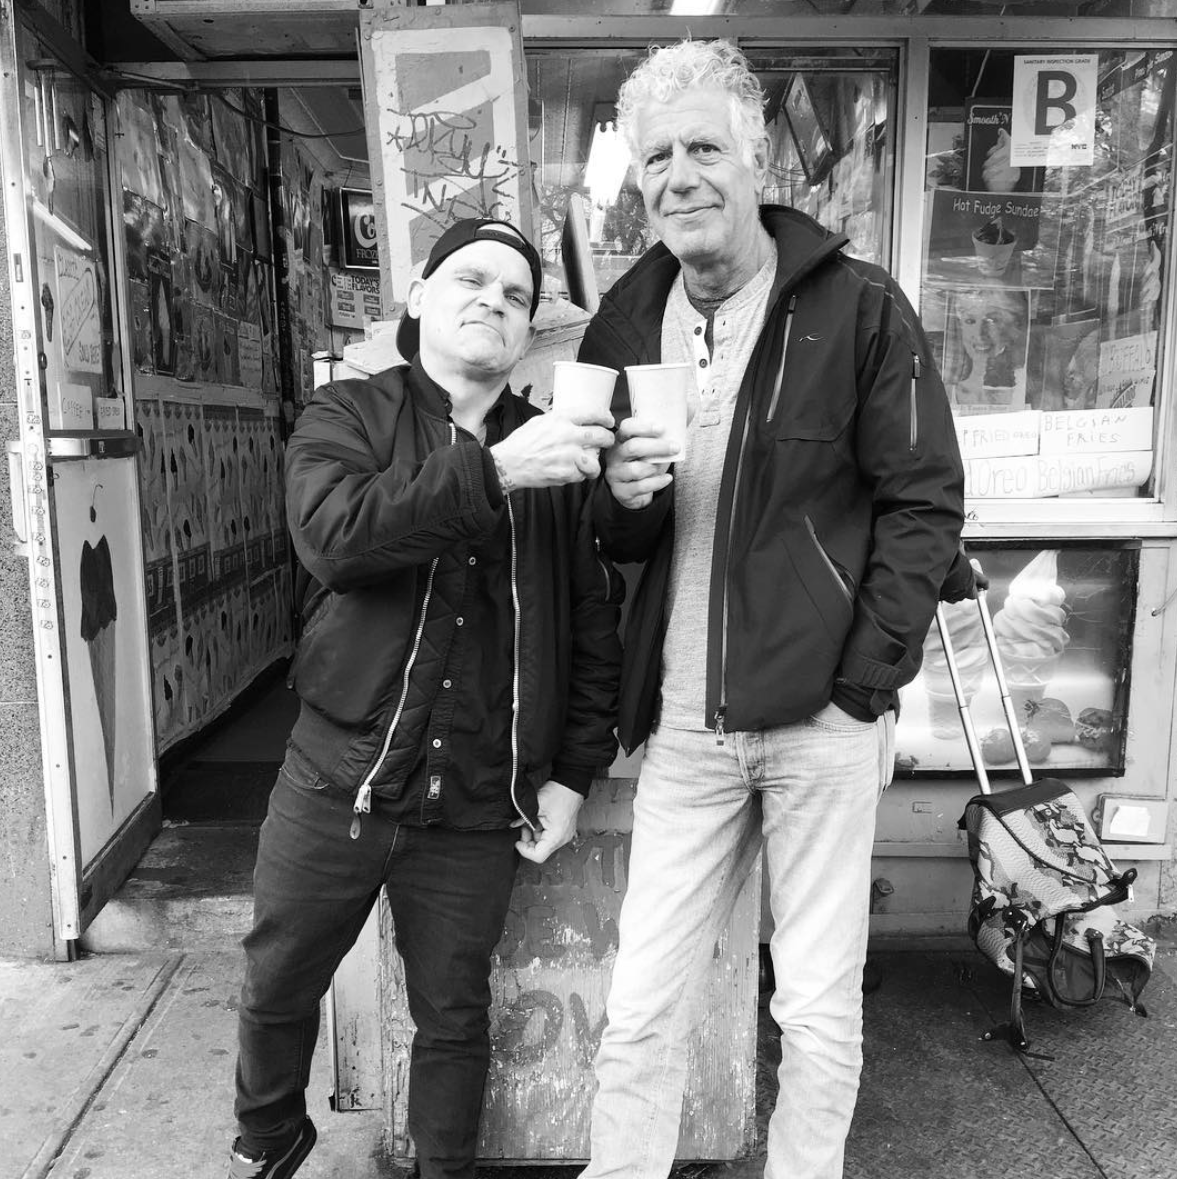 New York hardcore musician Harley Flanagan and Anthony Bourdain for the upcoming 11th season of 'Parts Unknown'